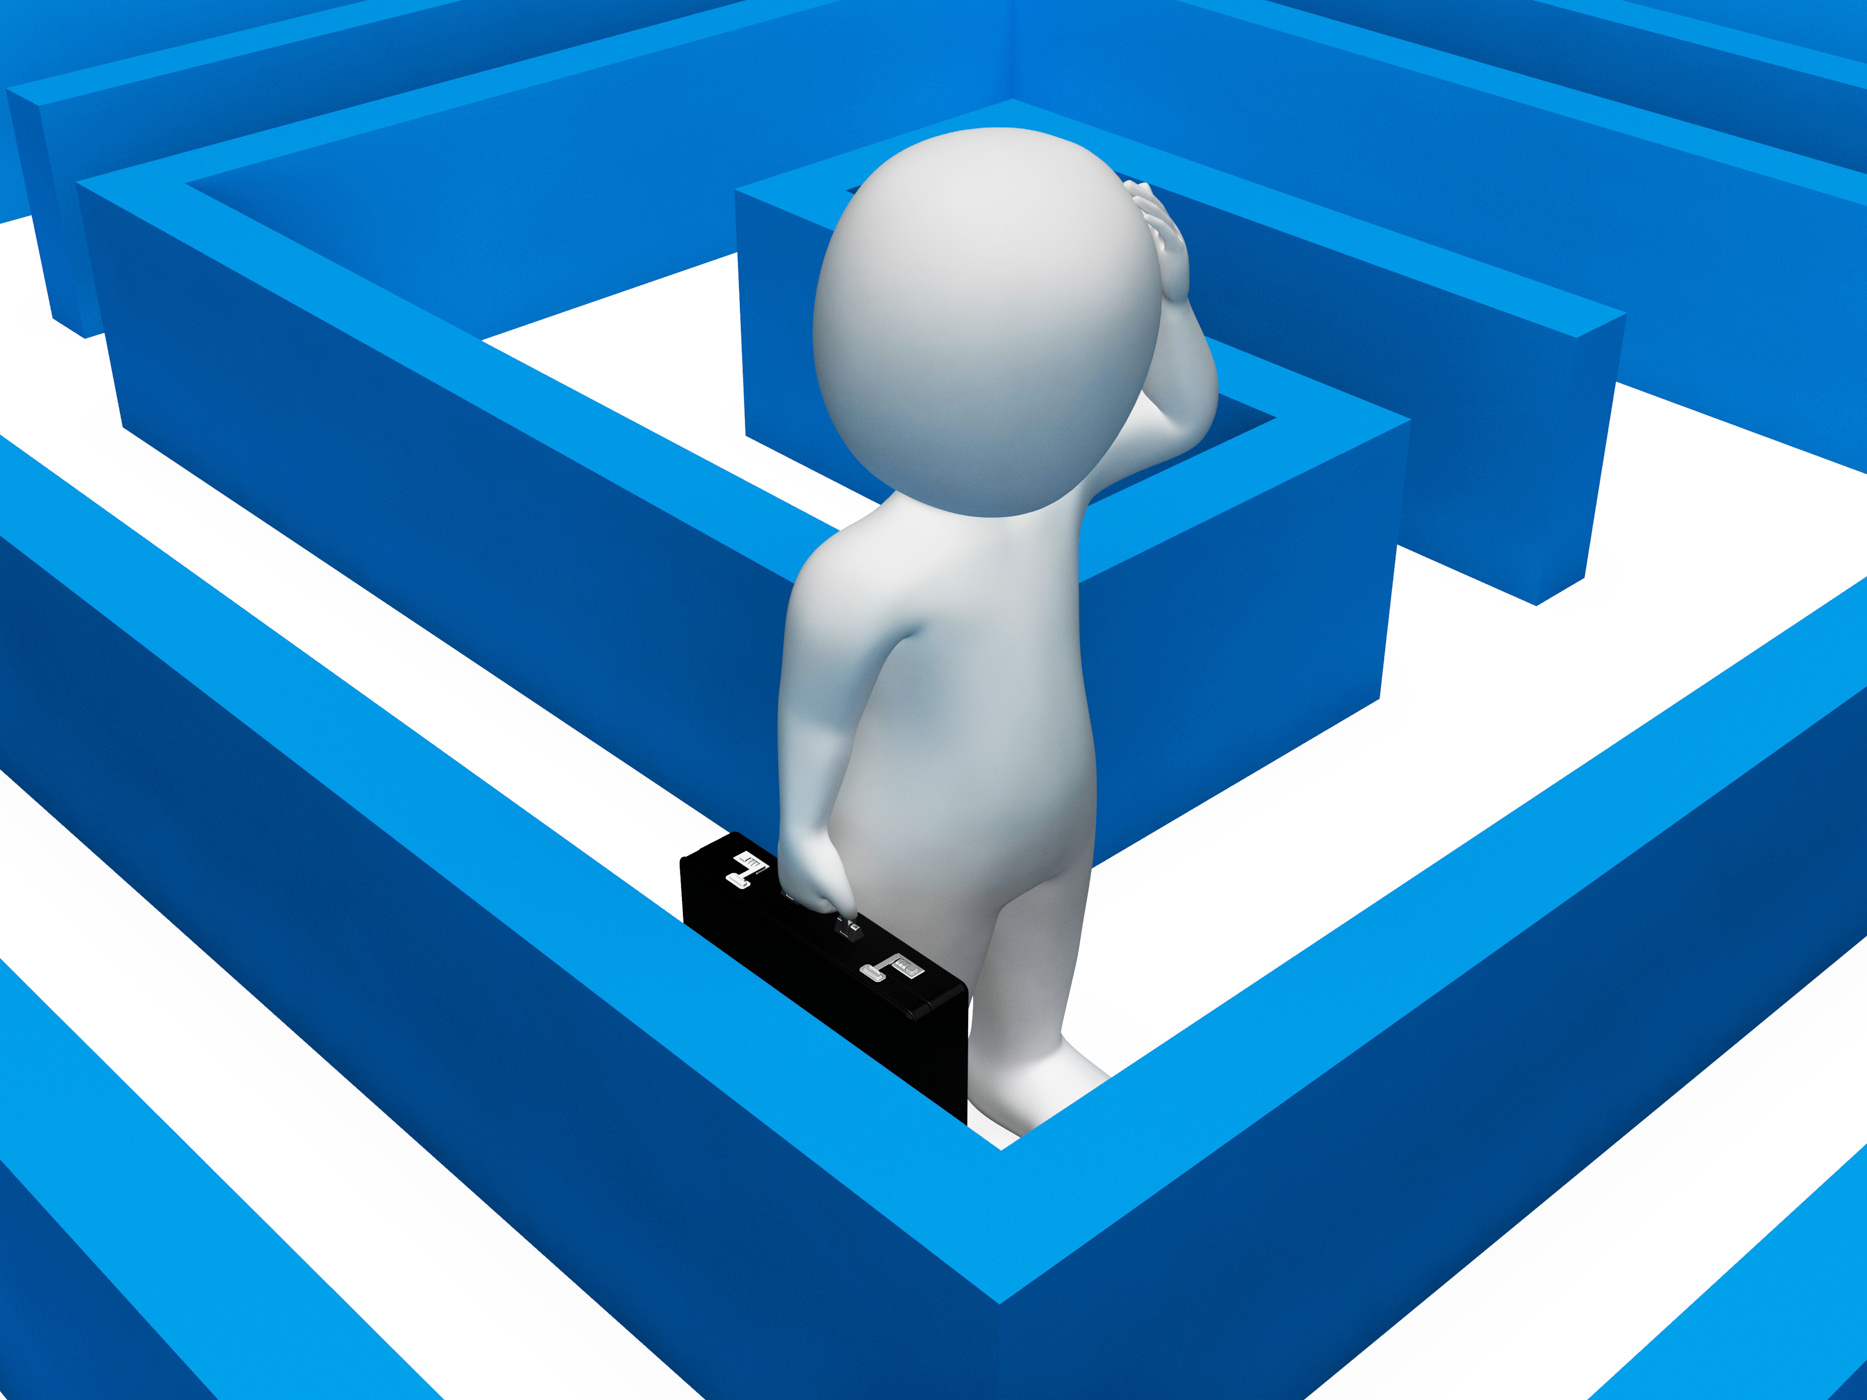 Character Lost Shows Decision Making And Adversity 3d Rendering, 3drendering, Perplexed, Man, Maze, HQ Photo